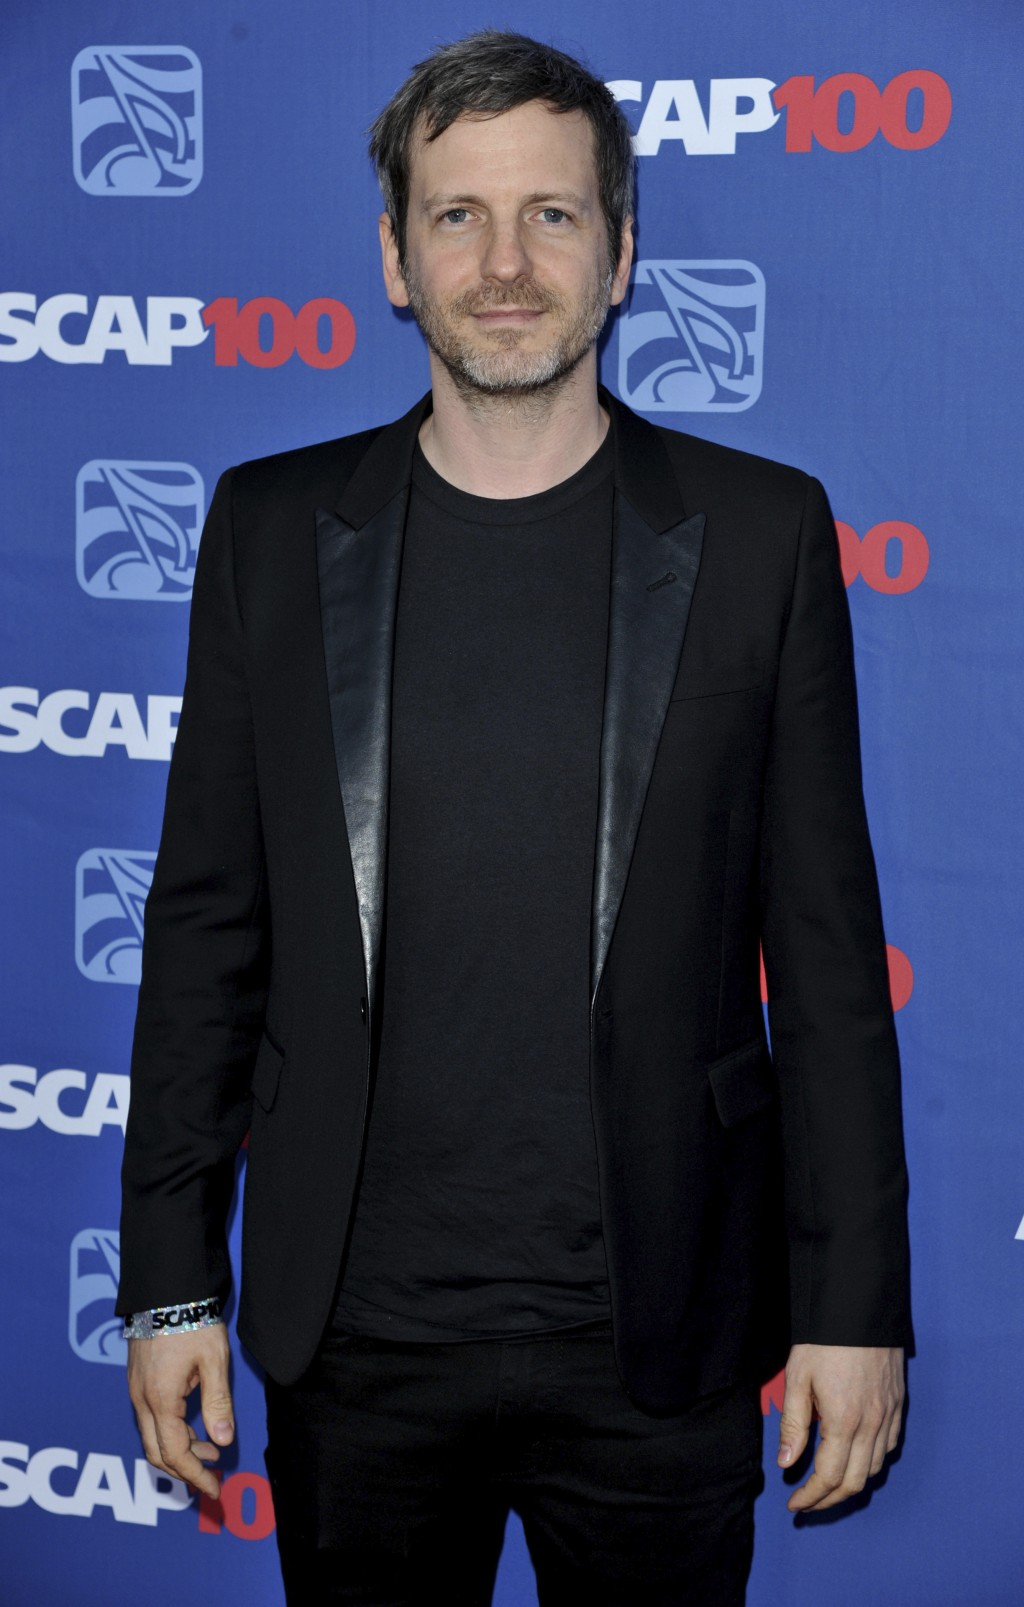 FILE - In this April 23, 2014 file photo, Lukasz Gottwald aka Dr. Luke arrives at the 31st Annual ASCAP Pop Music Awards at the Loews Hollywood Hotel ...